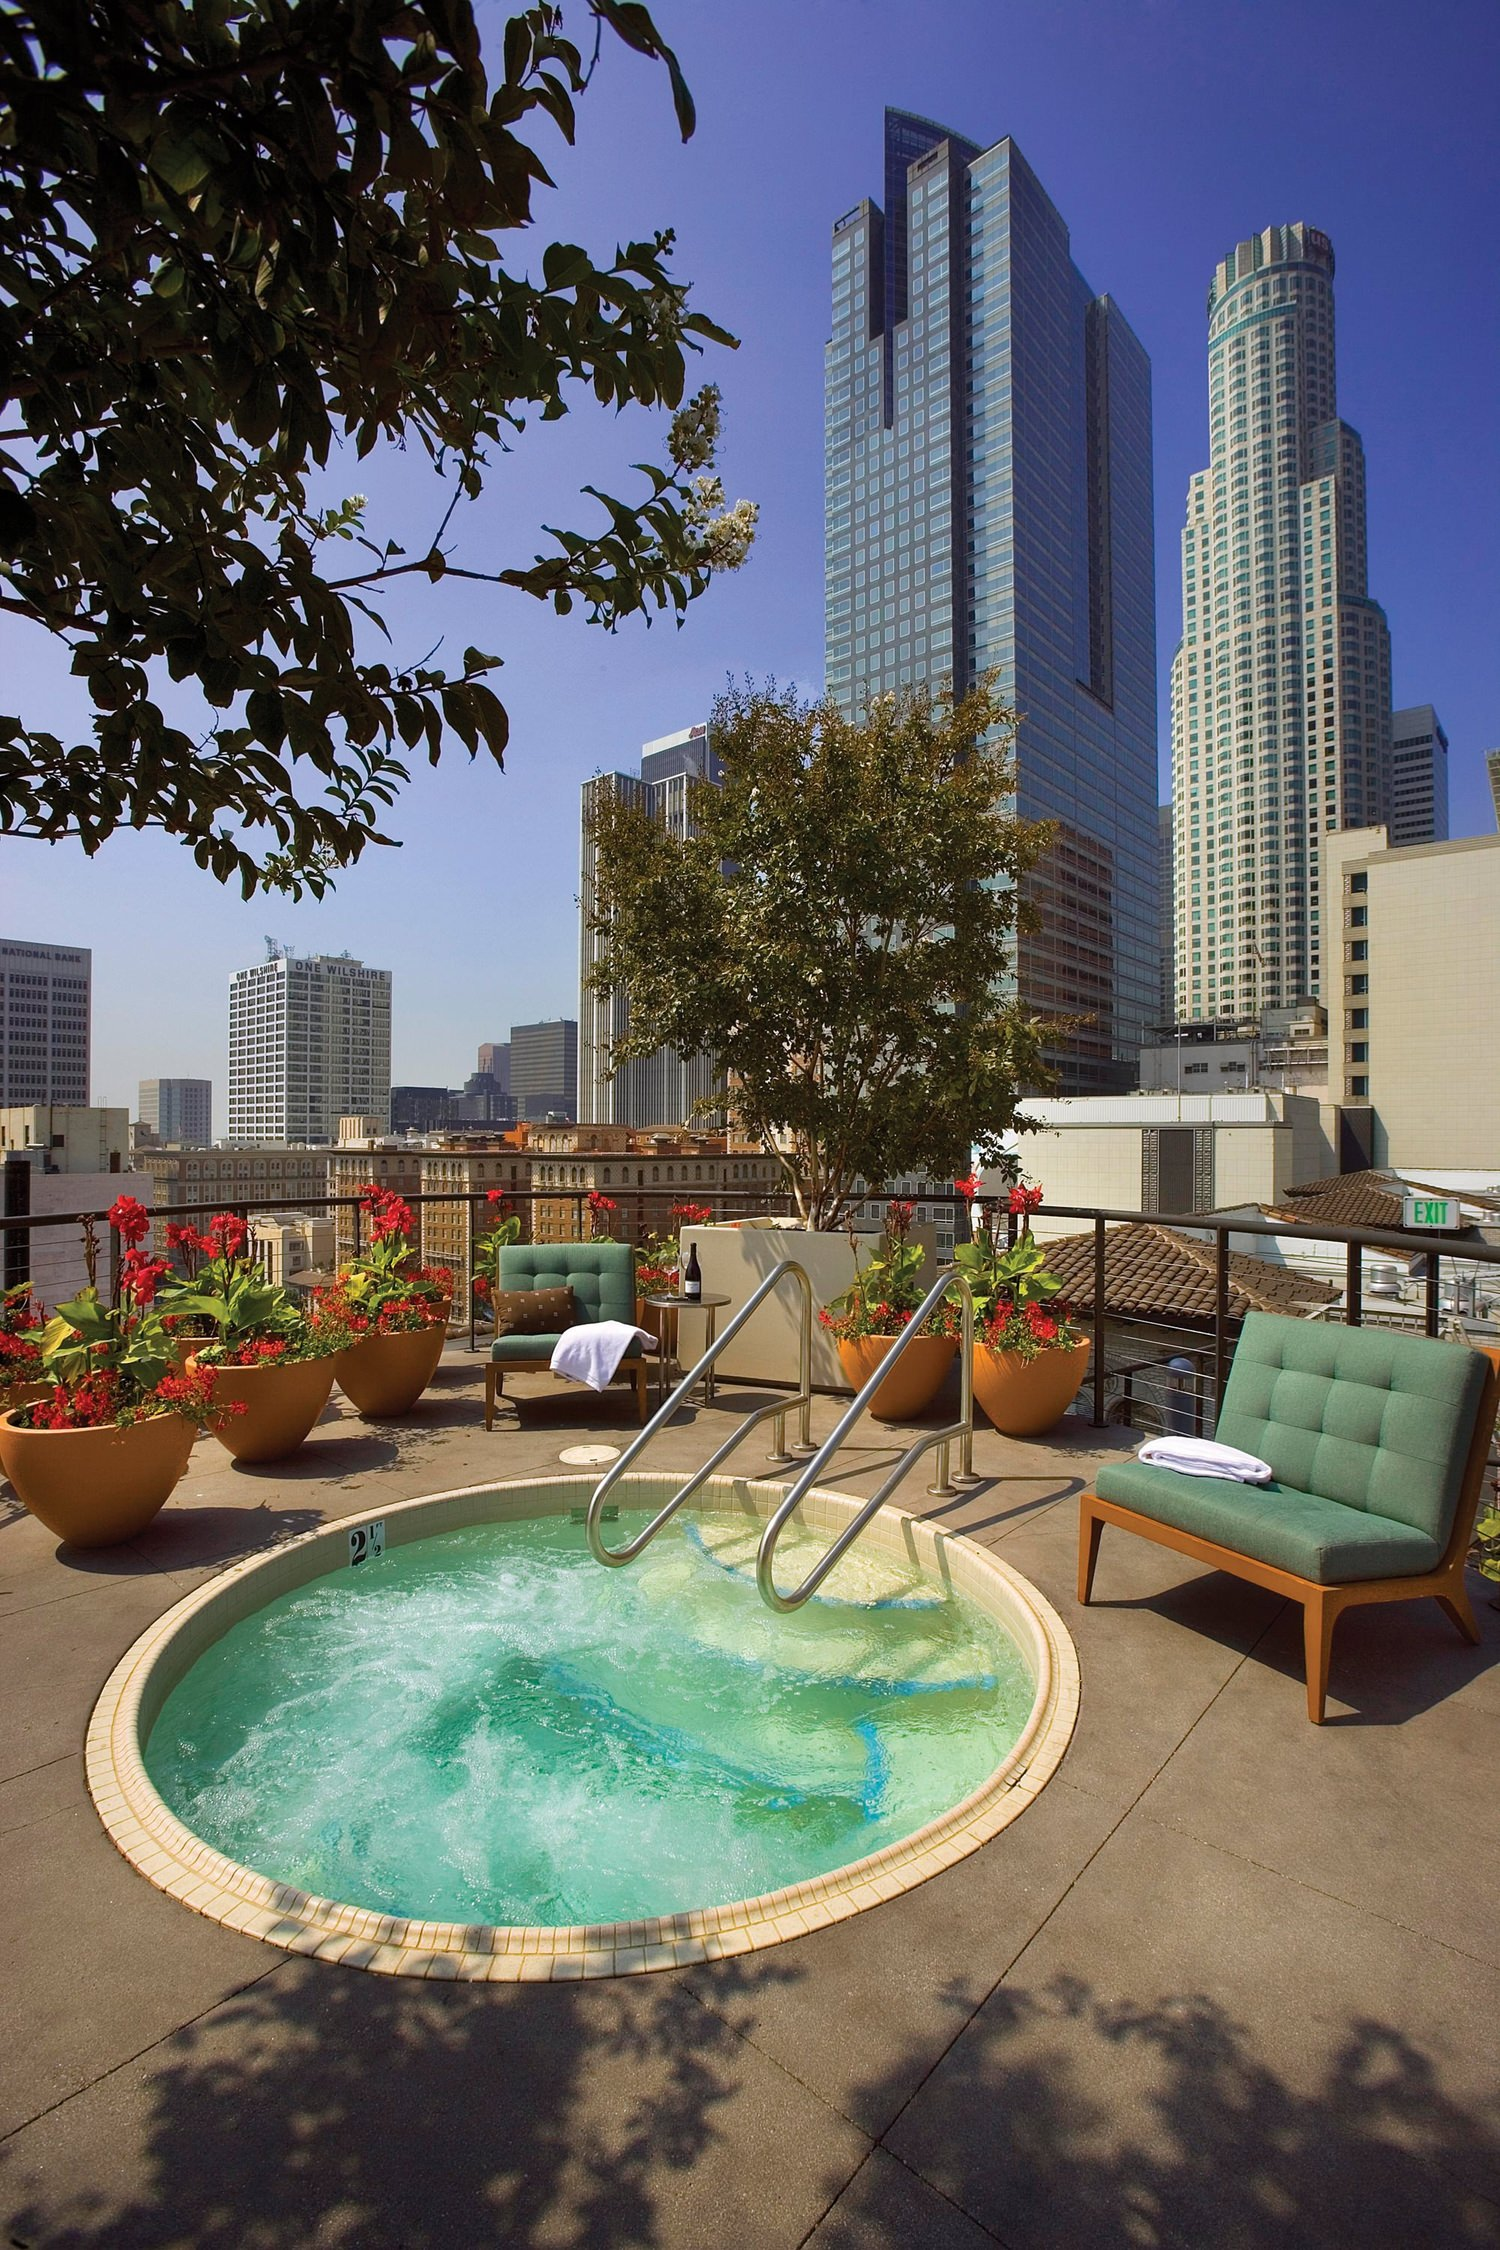 A hot tub surrounded by outdoor furniture that is at a pation of a building in the city.